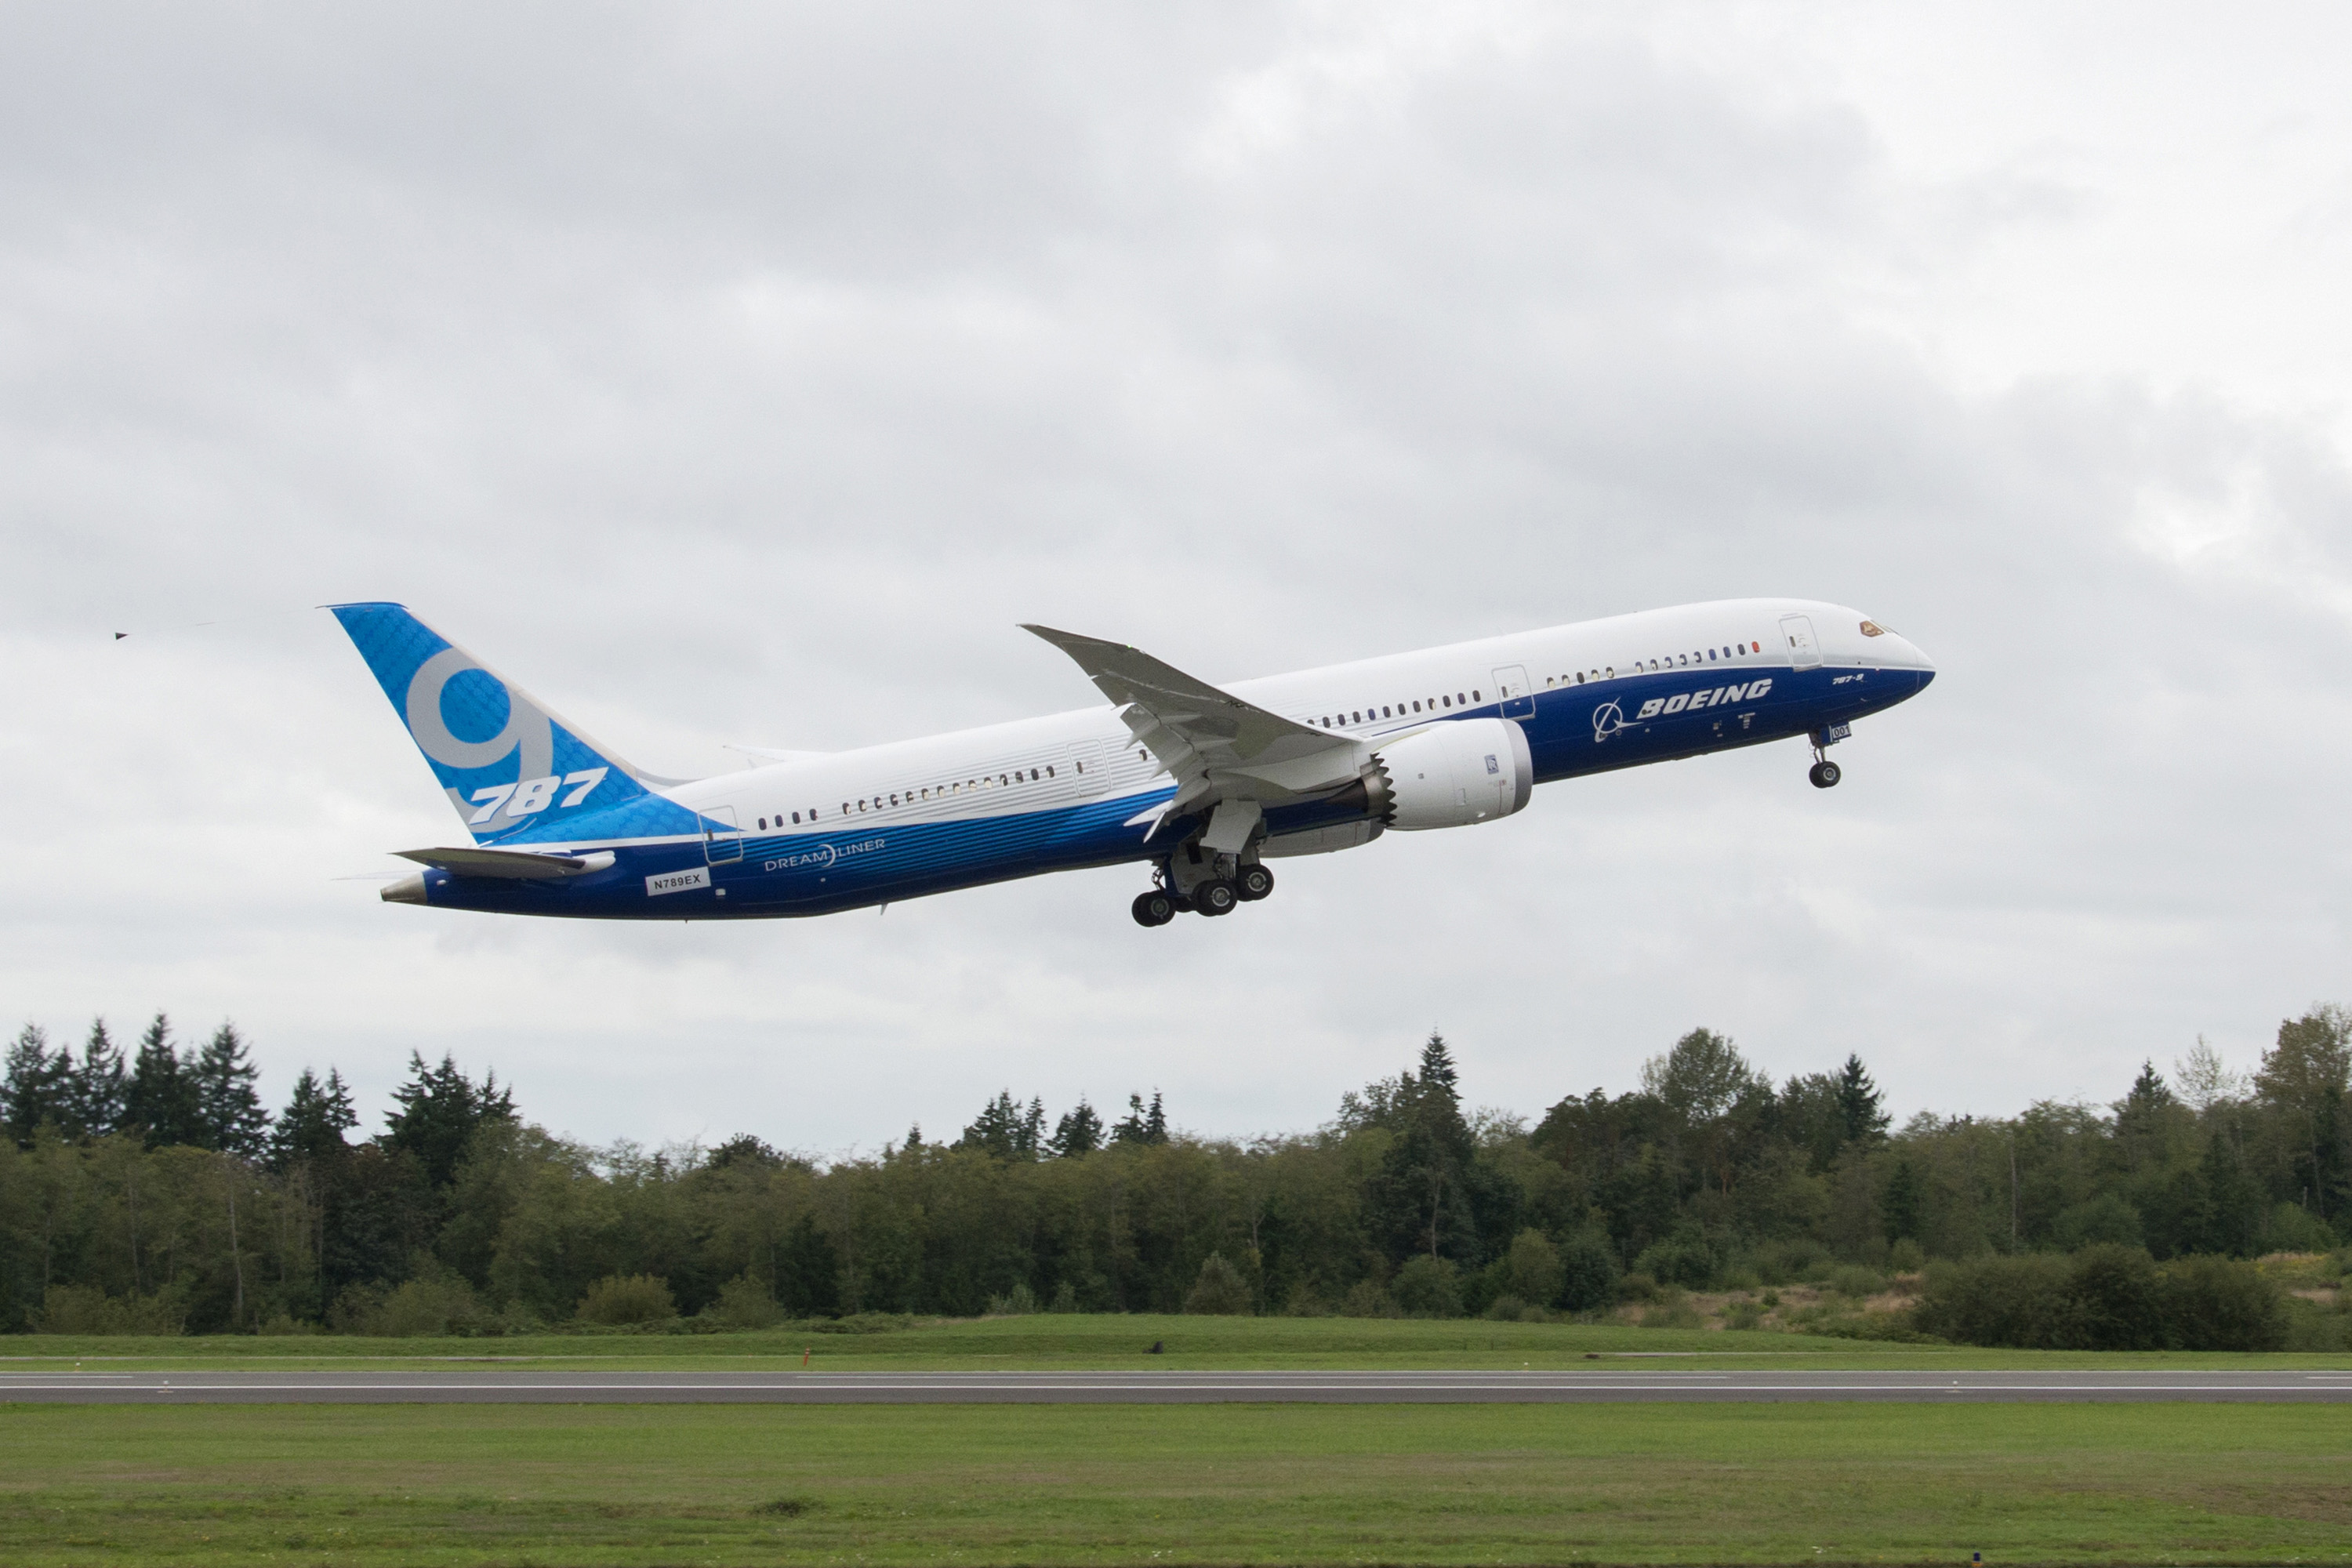 787-9 First Flight